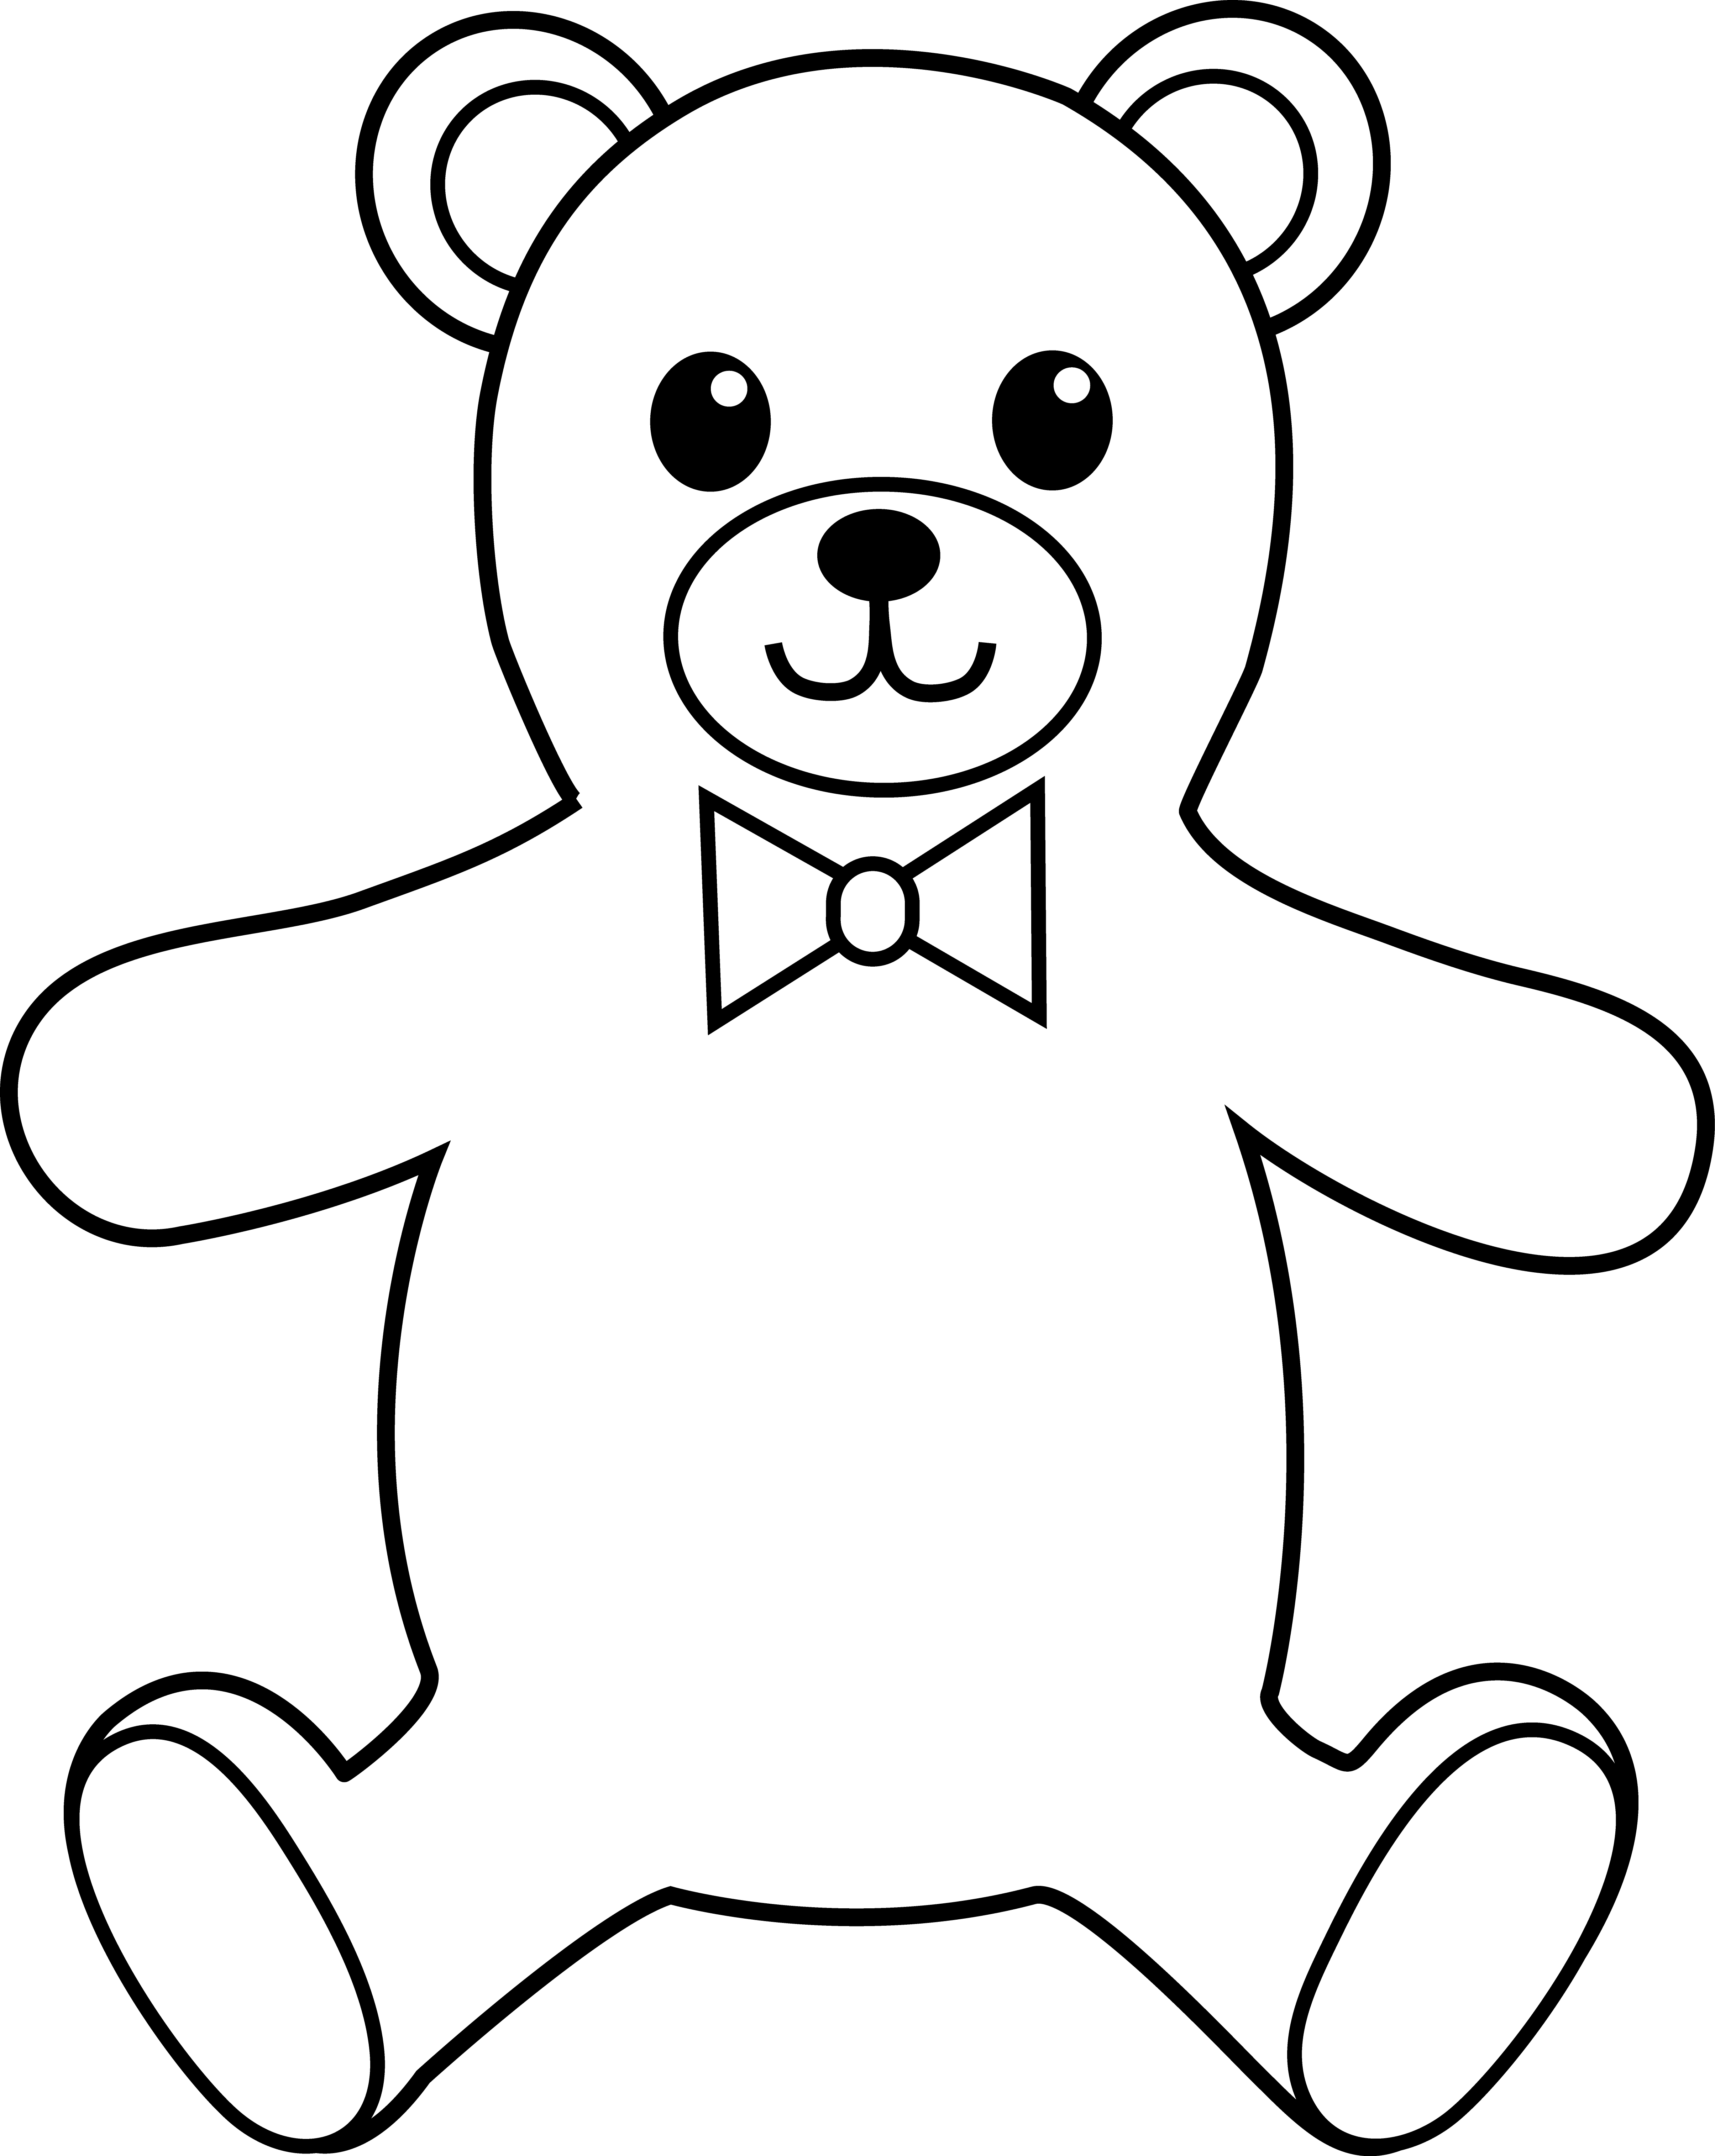 Teddy bear  black and white teddy bear black and white free download clip art 2